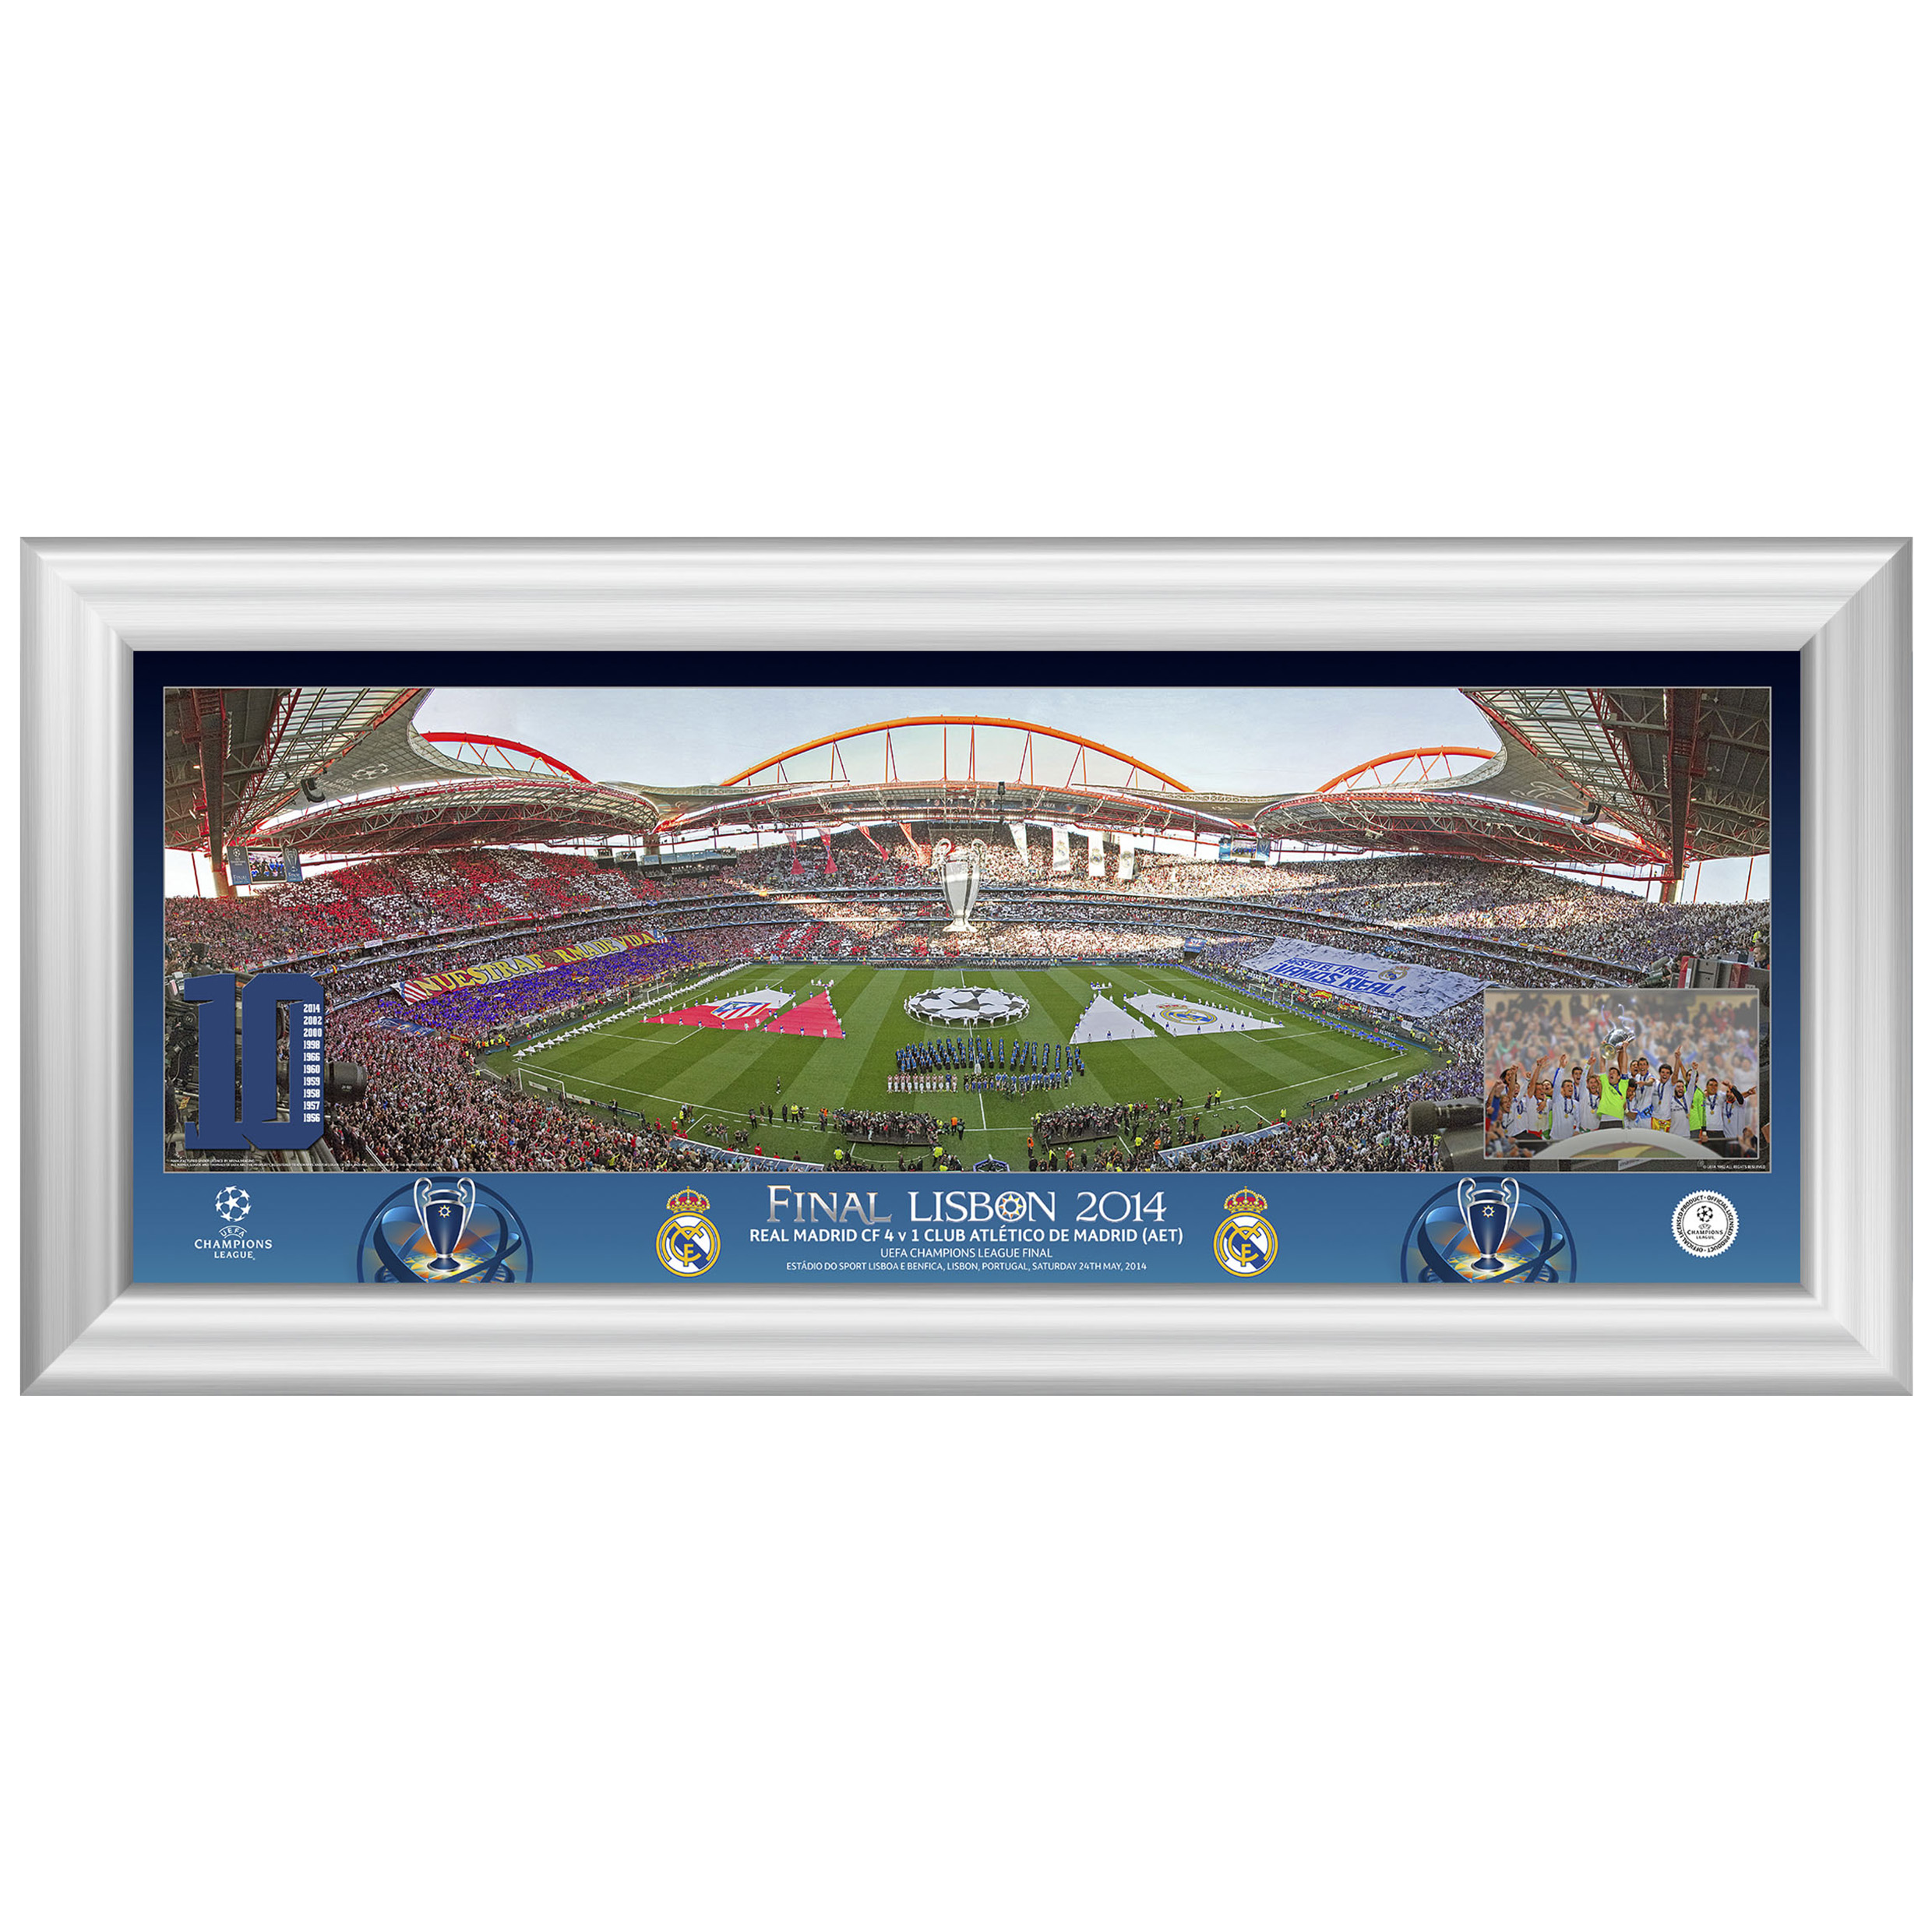 Real Madrid Champions League Final 2014 Line Up Panoramic Desktop Print - 13 x 5 Inch